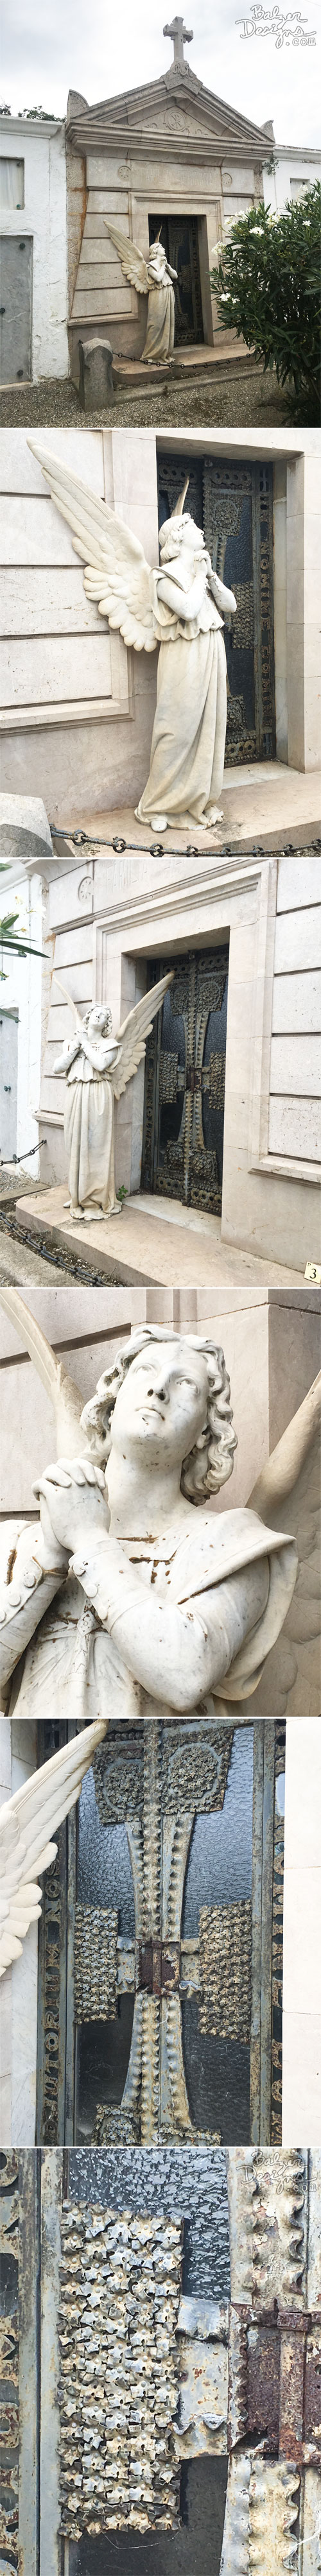 From the Balzer Designs Blog: Cemetery in Cadeques